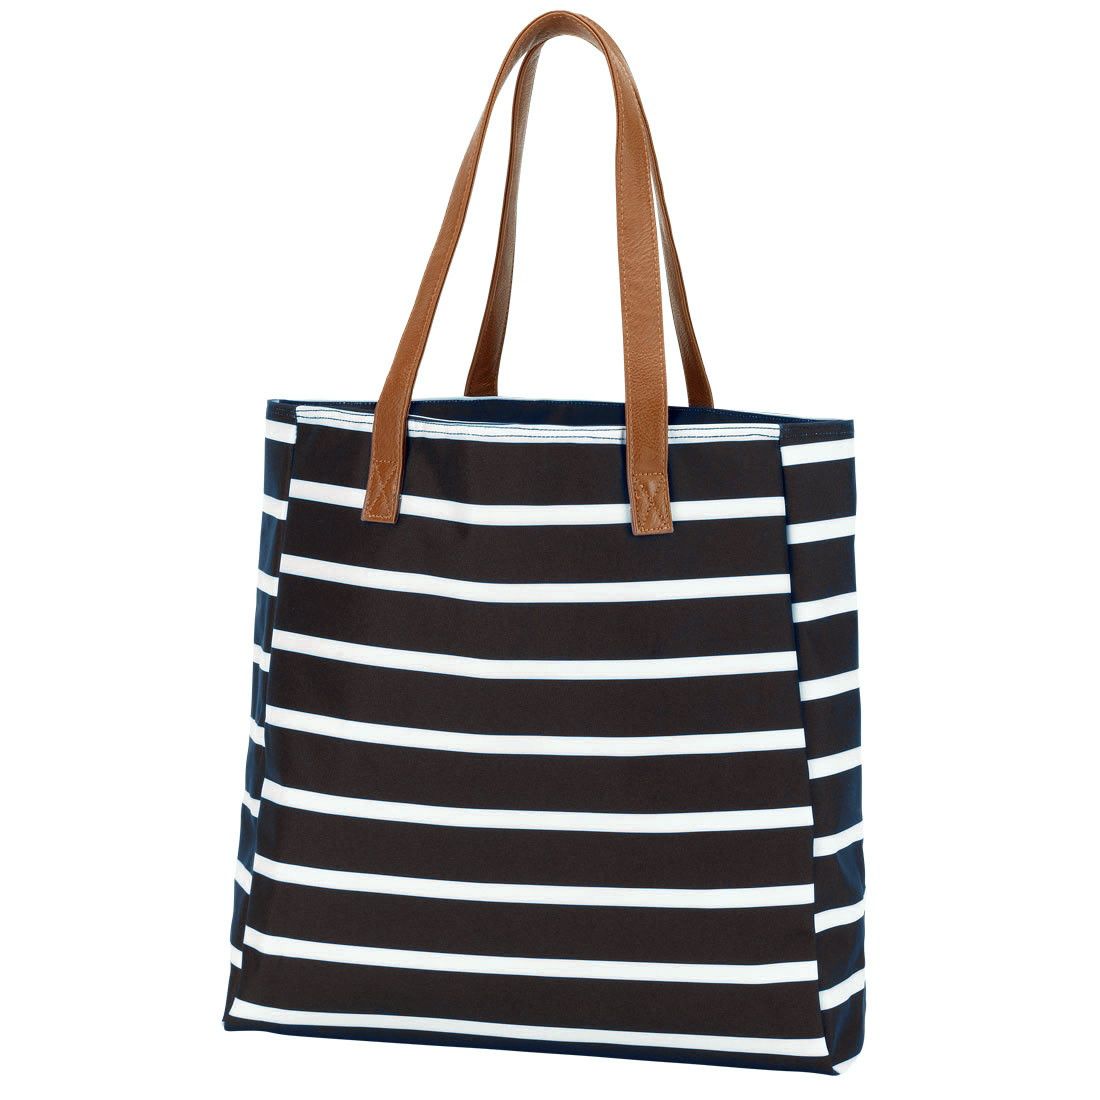 ab84dac2e1a Striped Tote Bag - 5 Color Options - Personalization Included ...